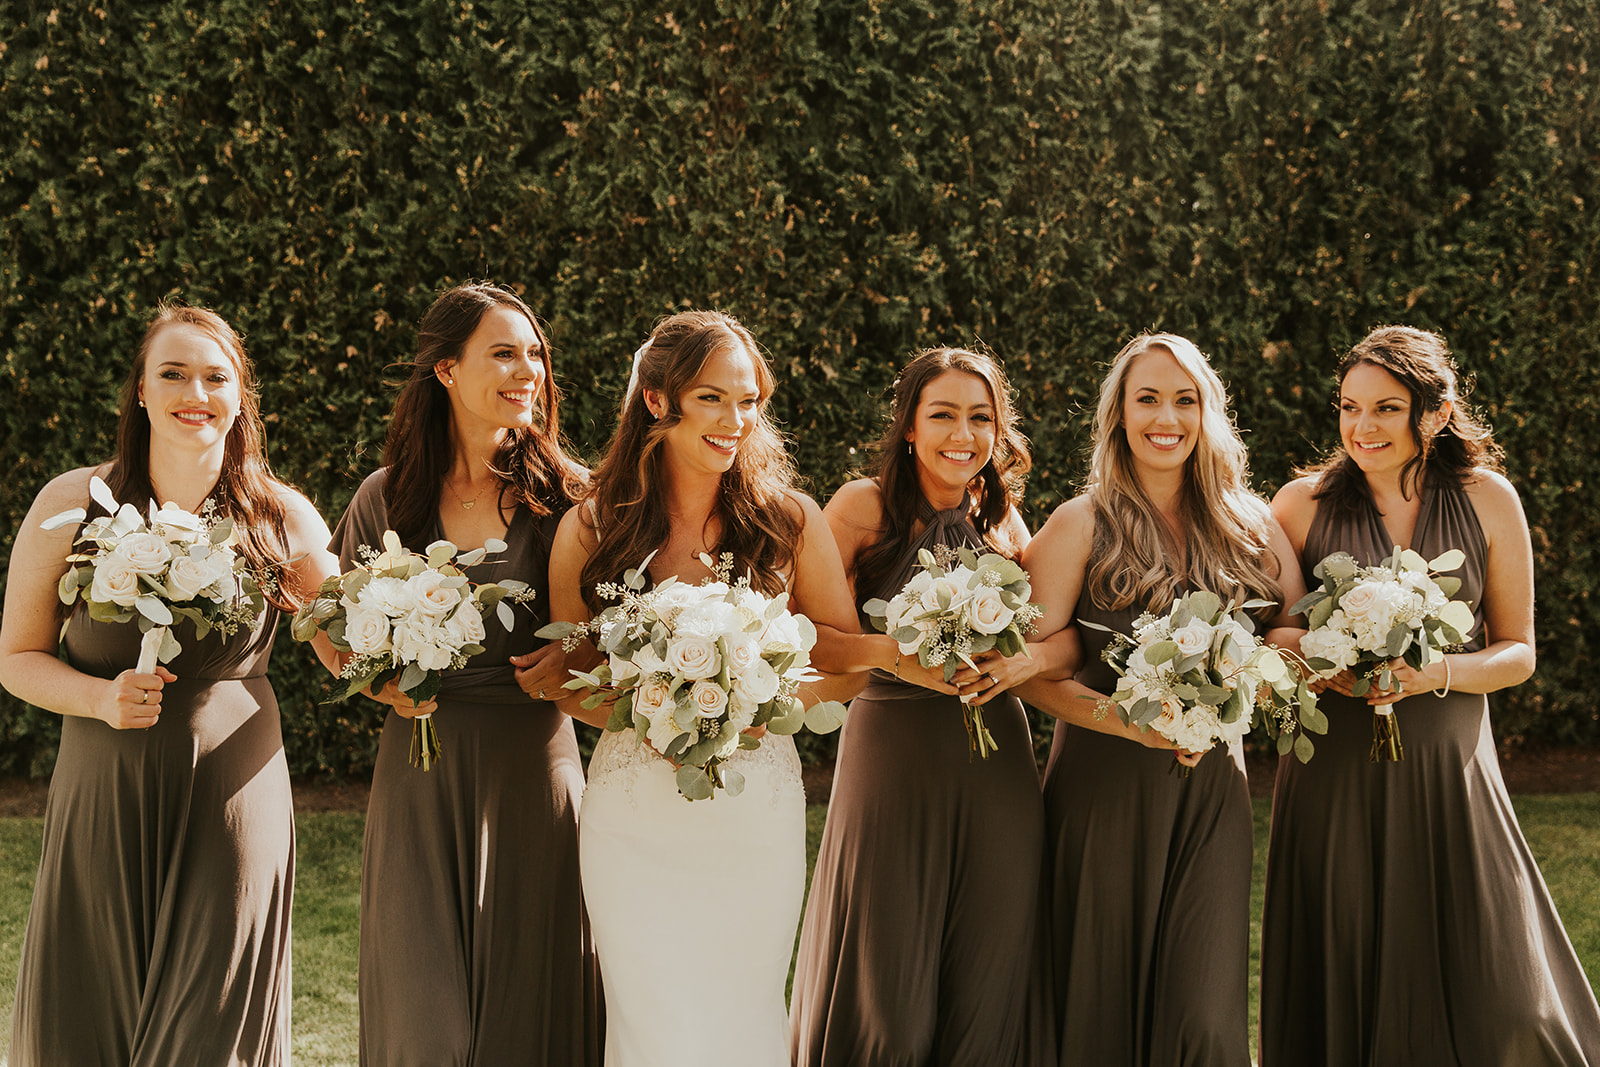 3 Reasons Why You Should Hire a Pro Wedding Florist